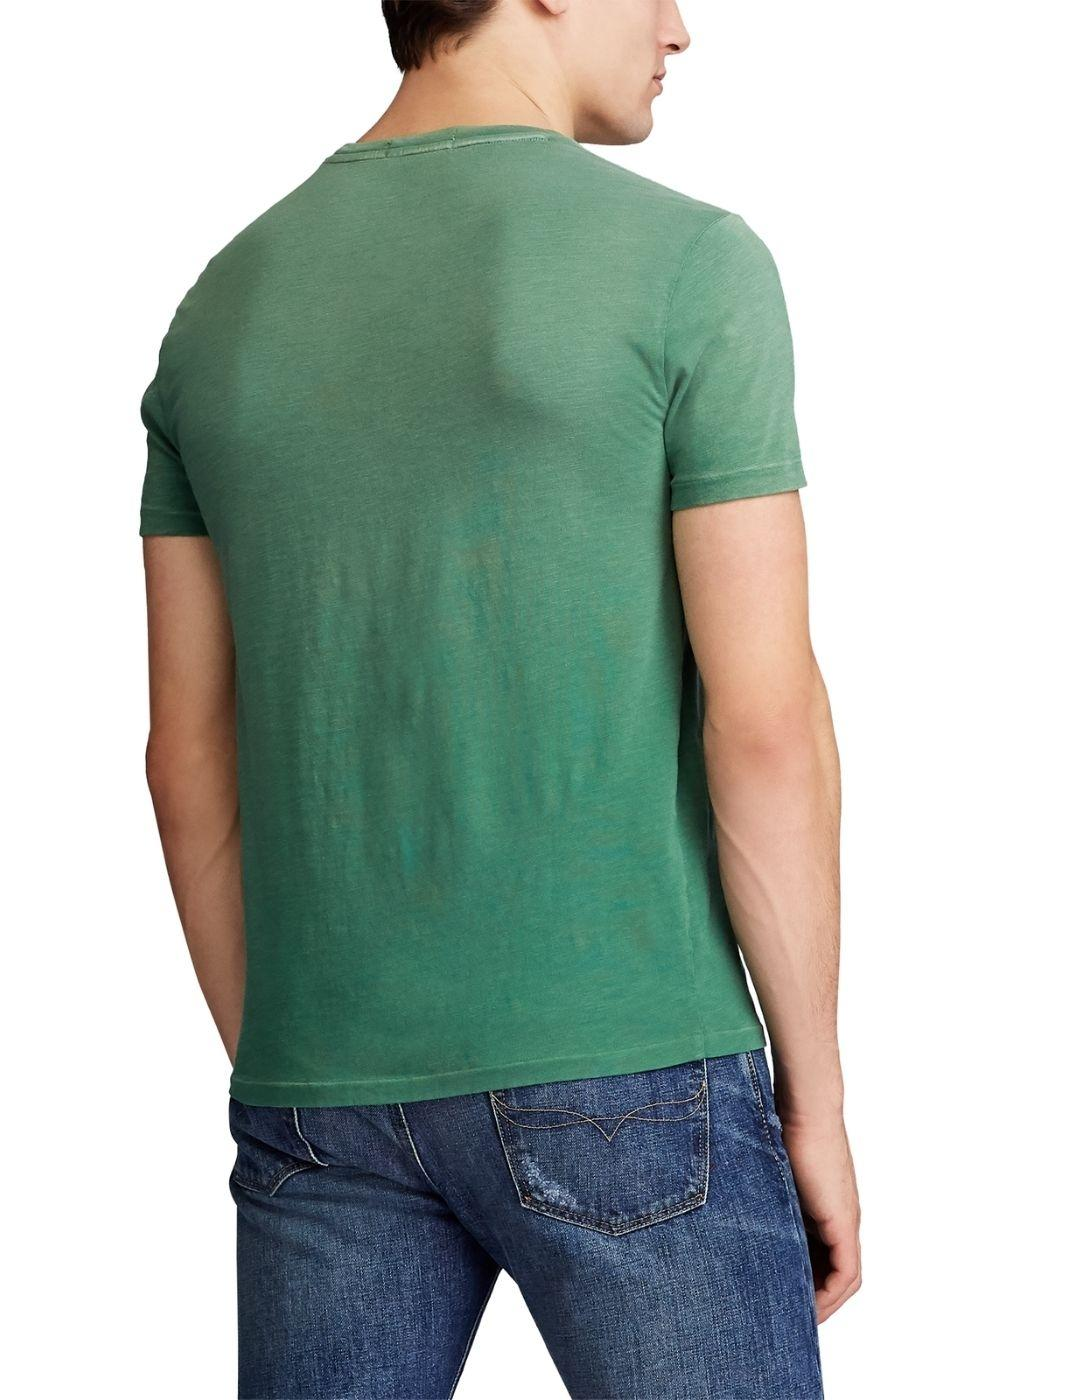 Camiseta Polo Ralph Lauren Custom Slim Fit verde de hombre